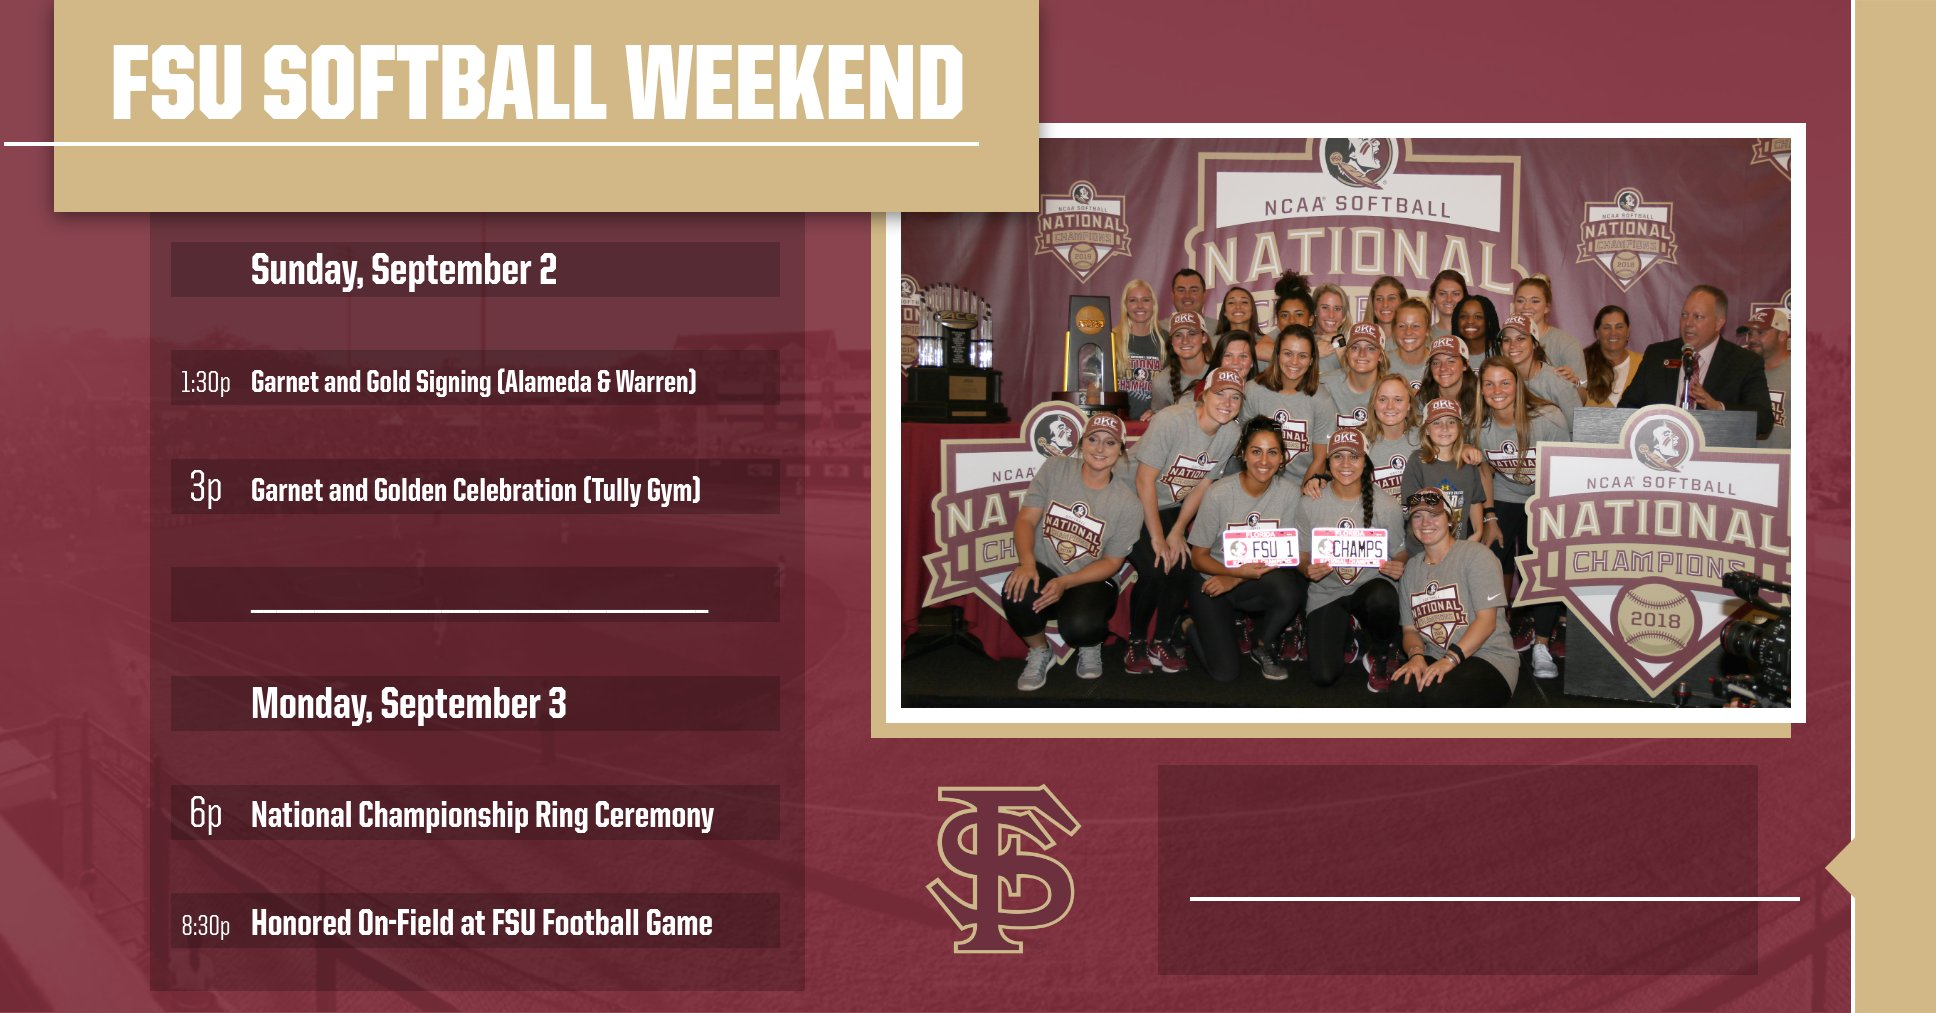 Celebrate With The National Champs This Weekend!